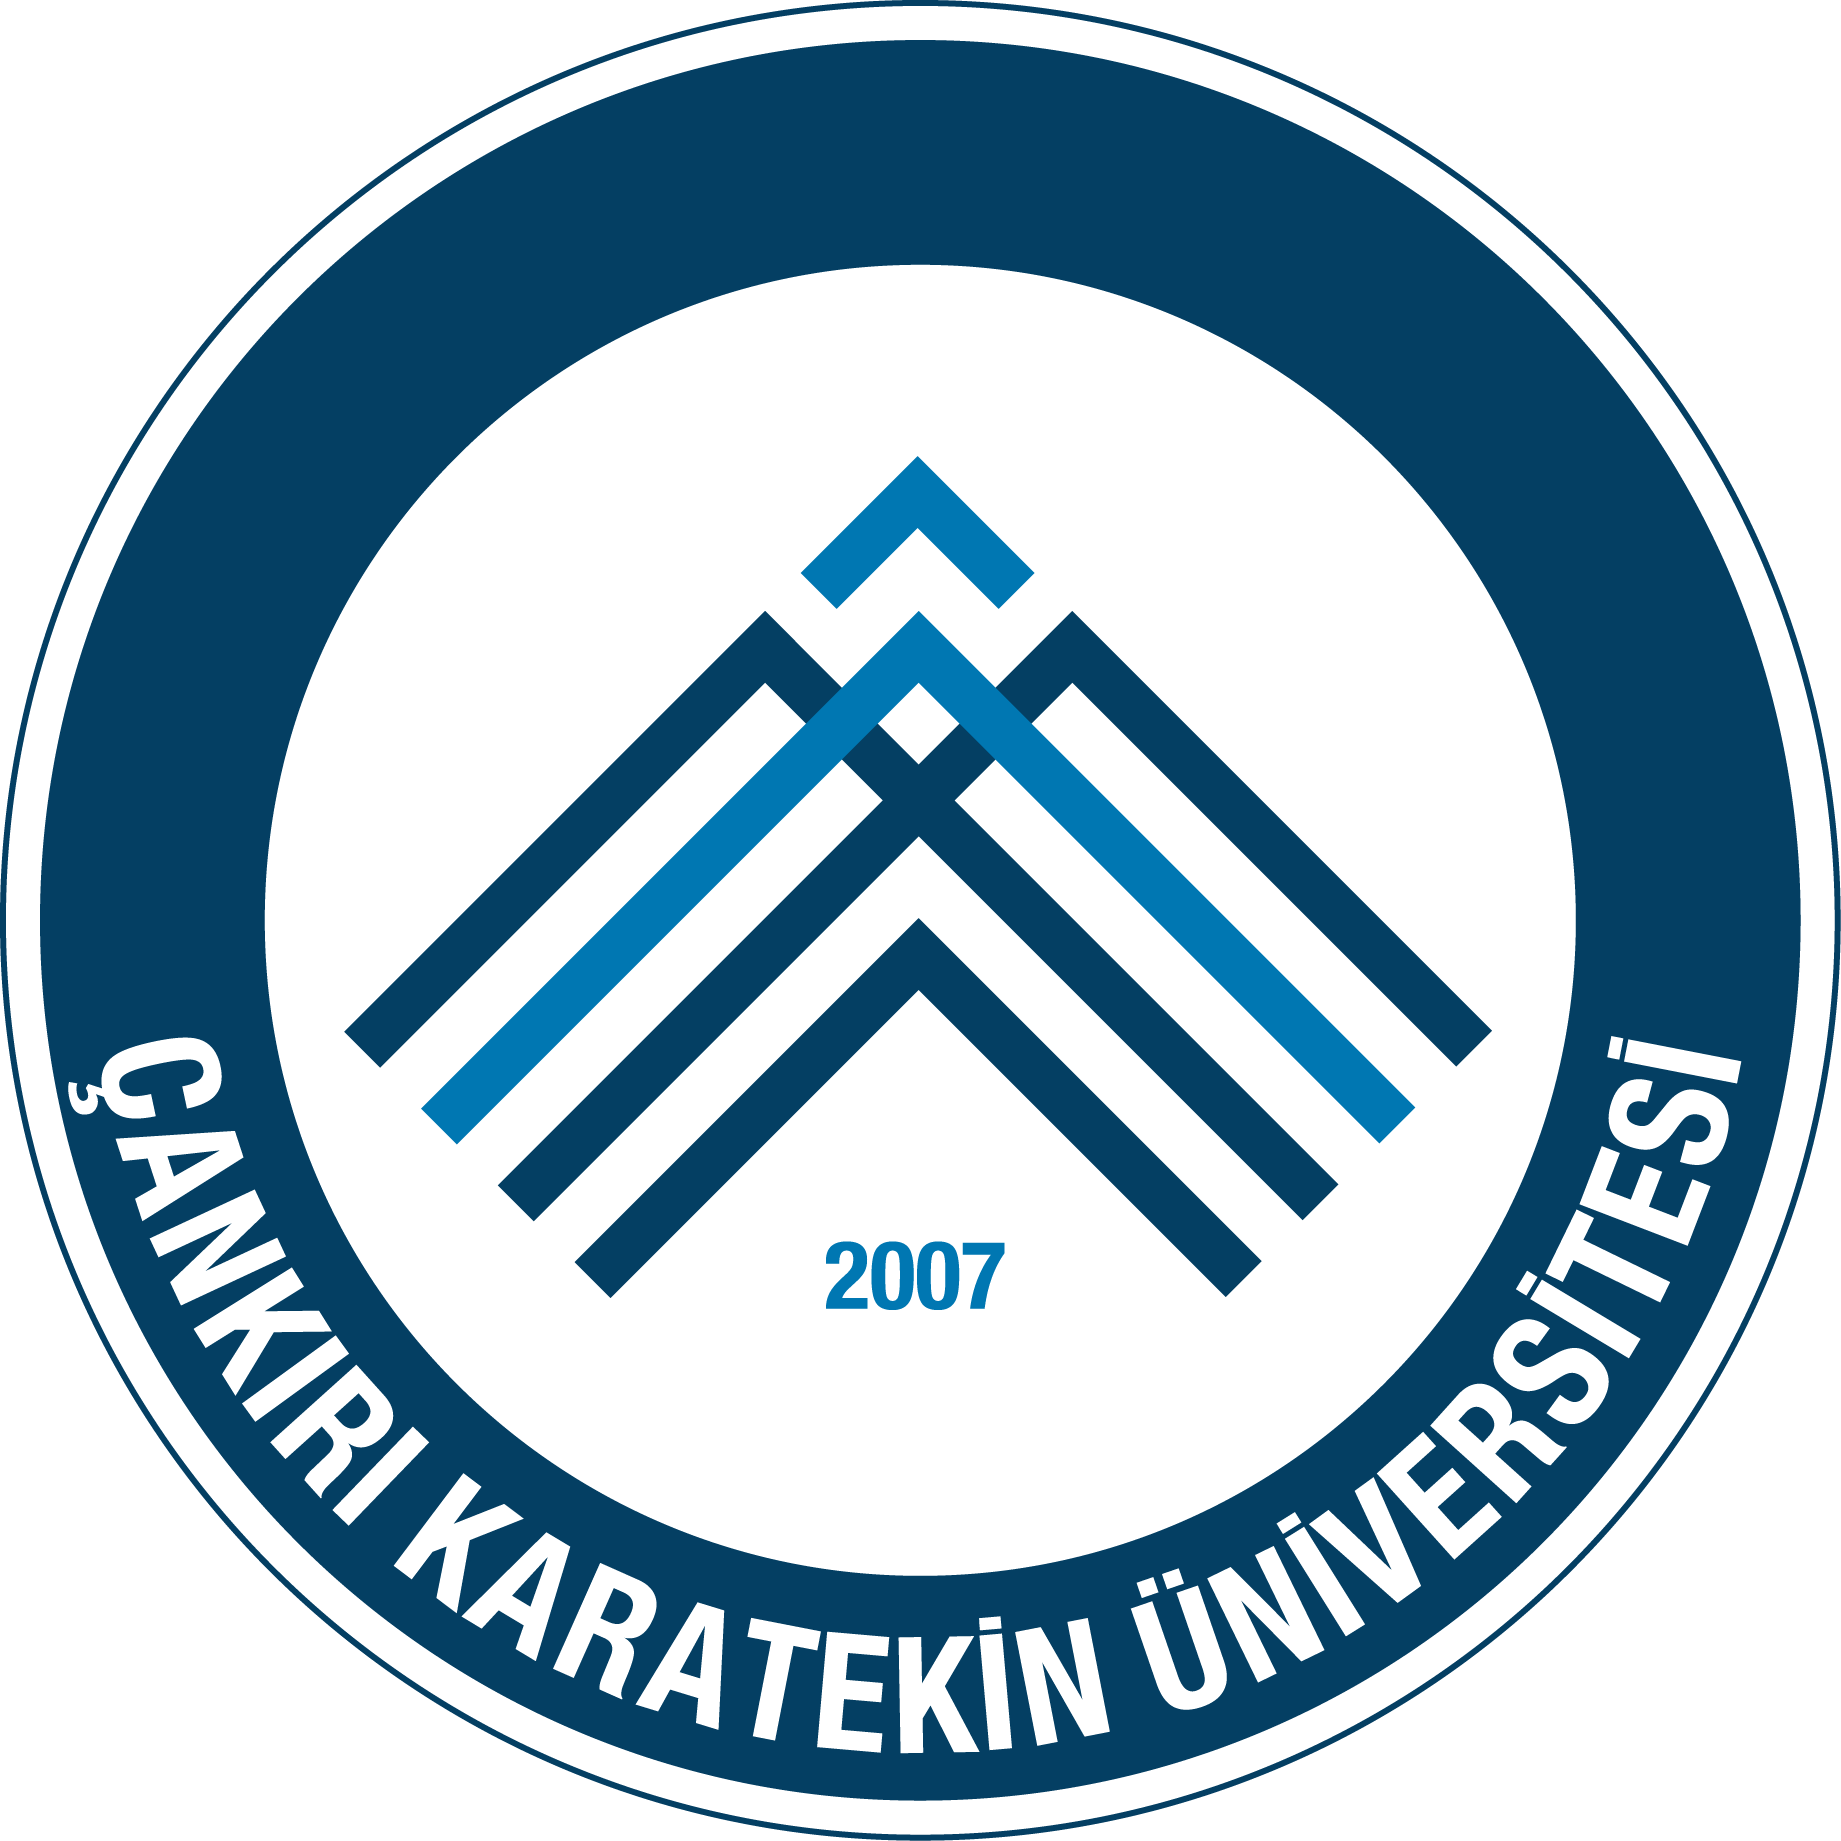 cankiri karatekin universitesi logo